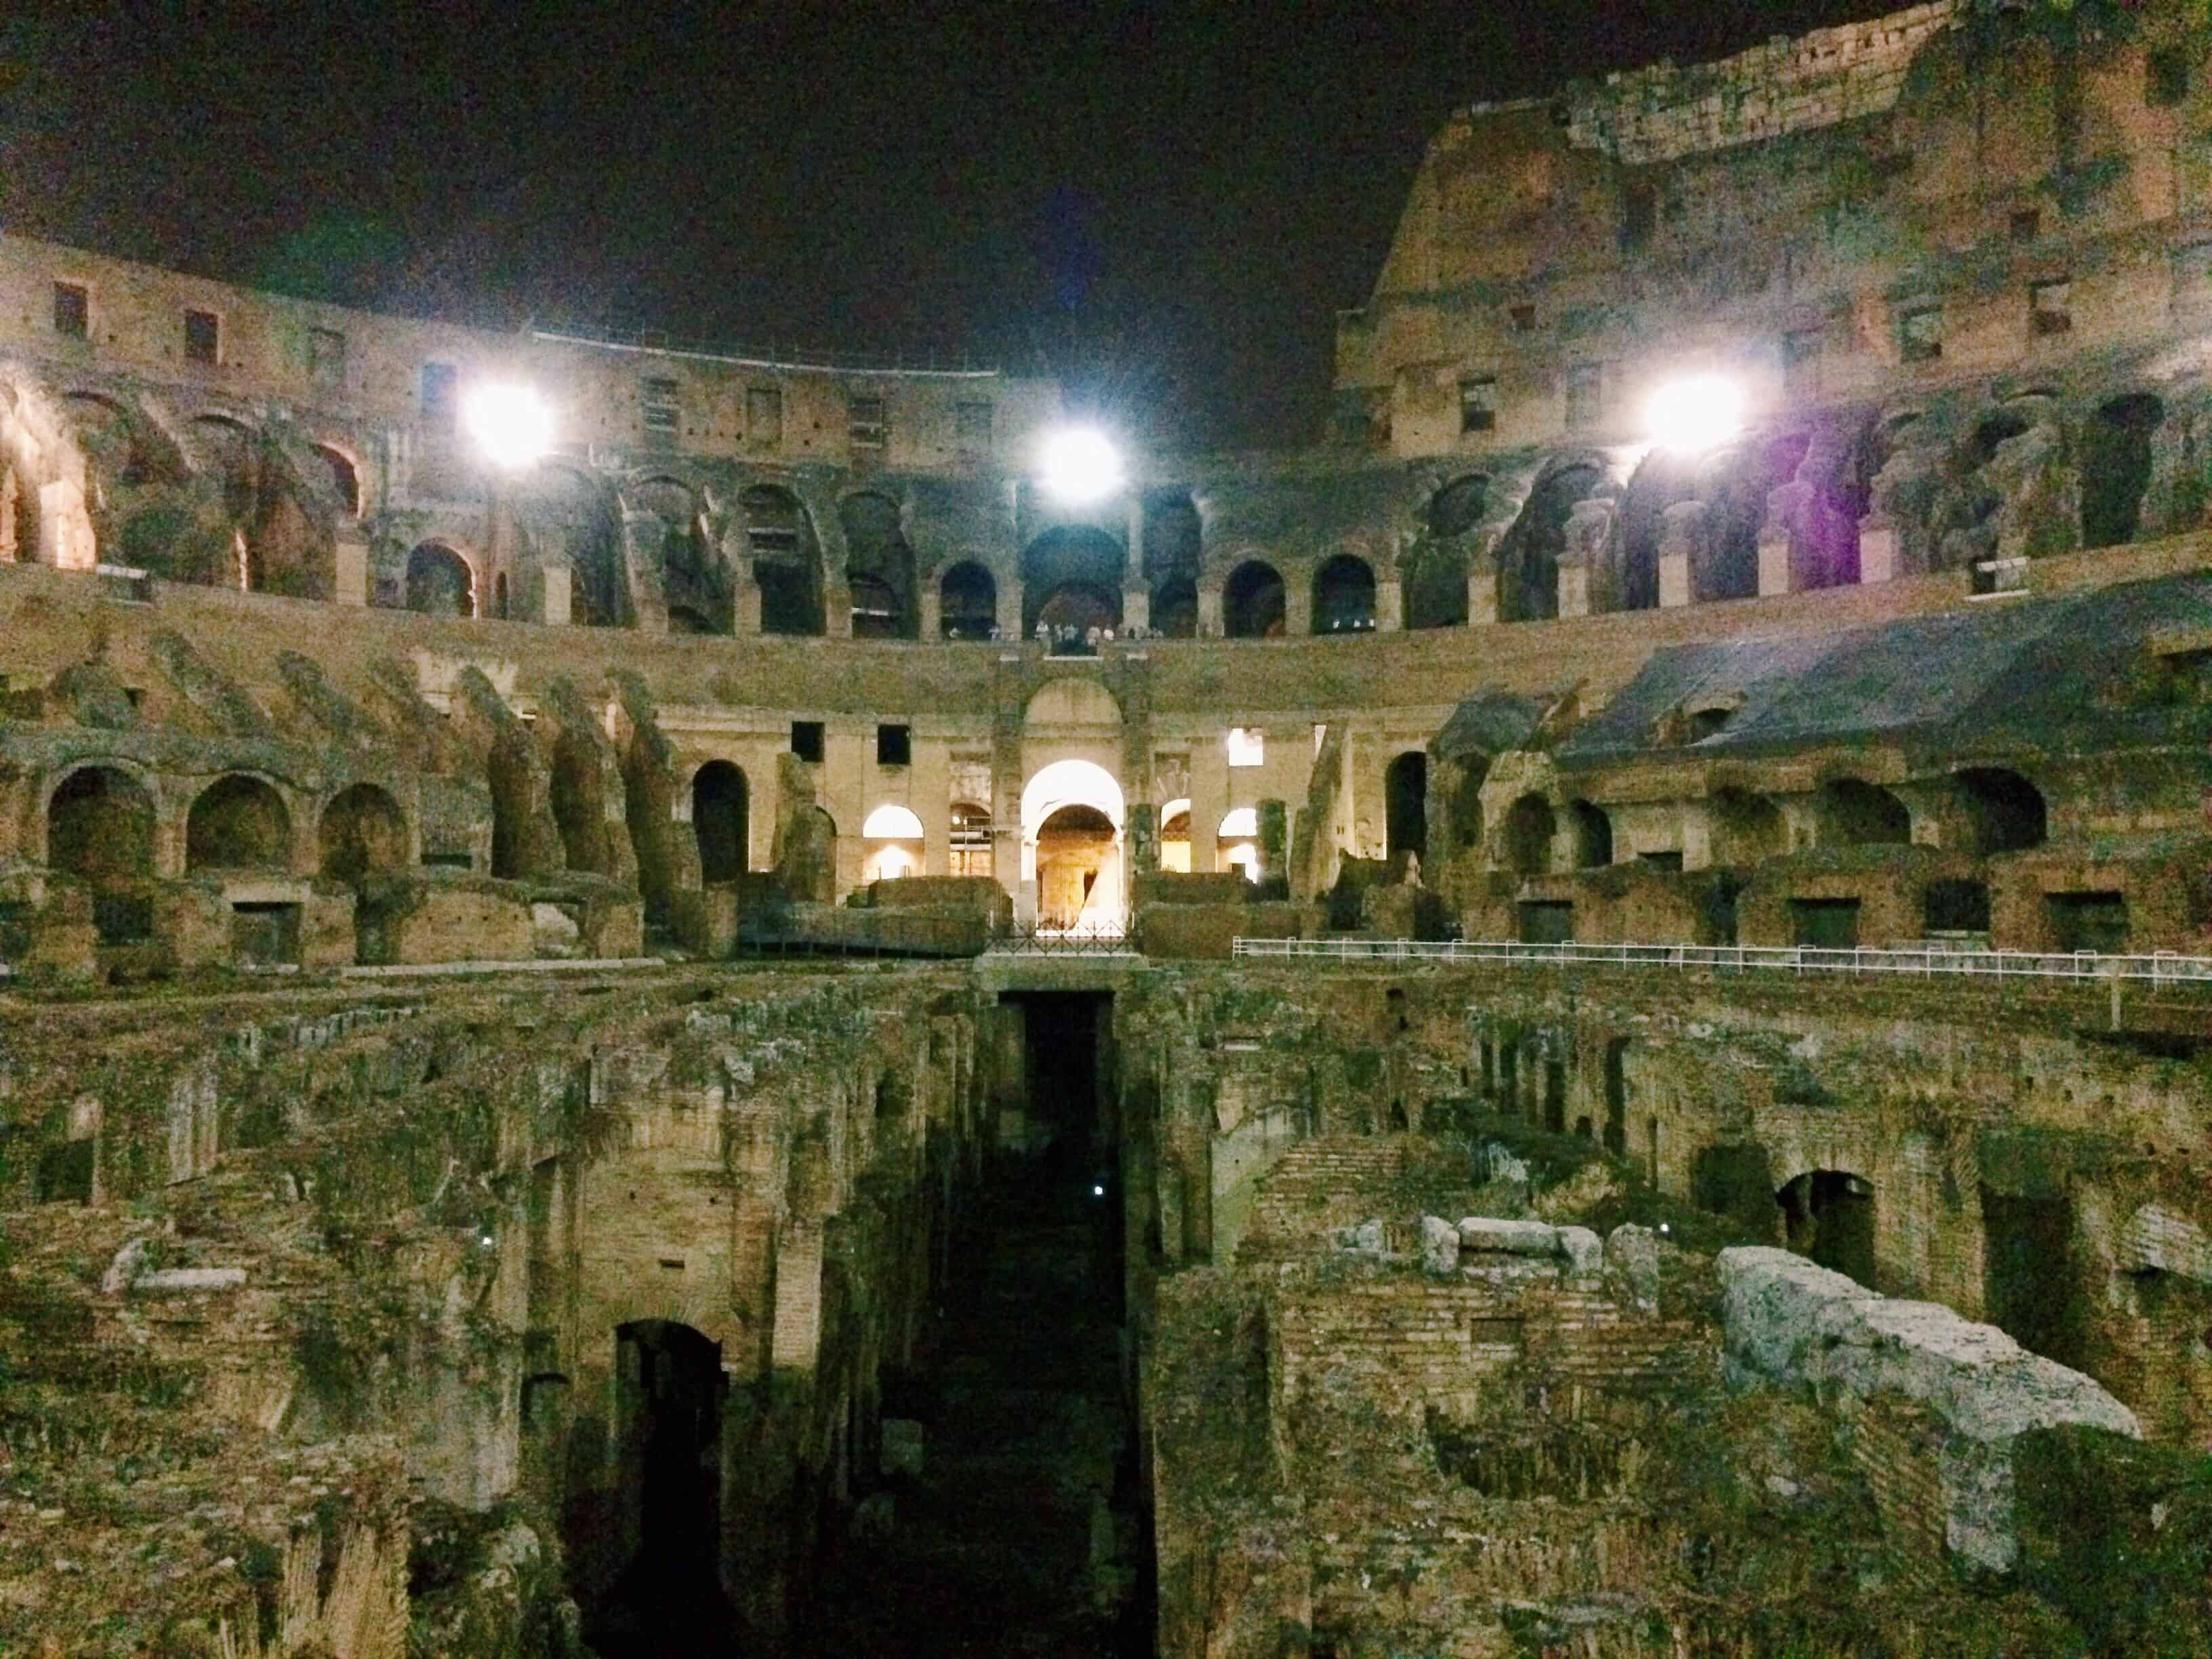 the colloosseum essay This essay will attempt to assess what similarities and differences exist, if any, between the colosseum and modern football stadia  the colloosseum.